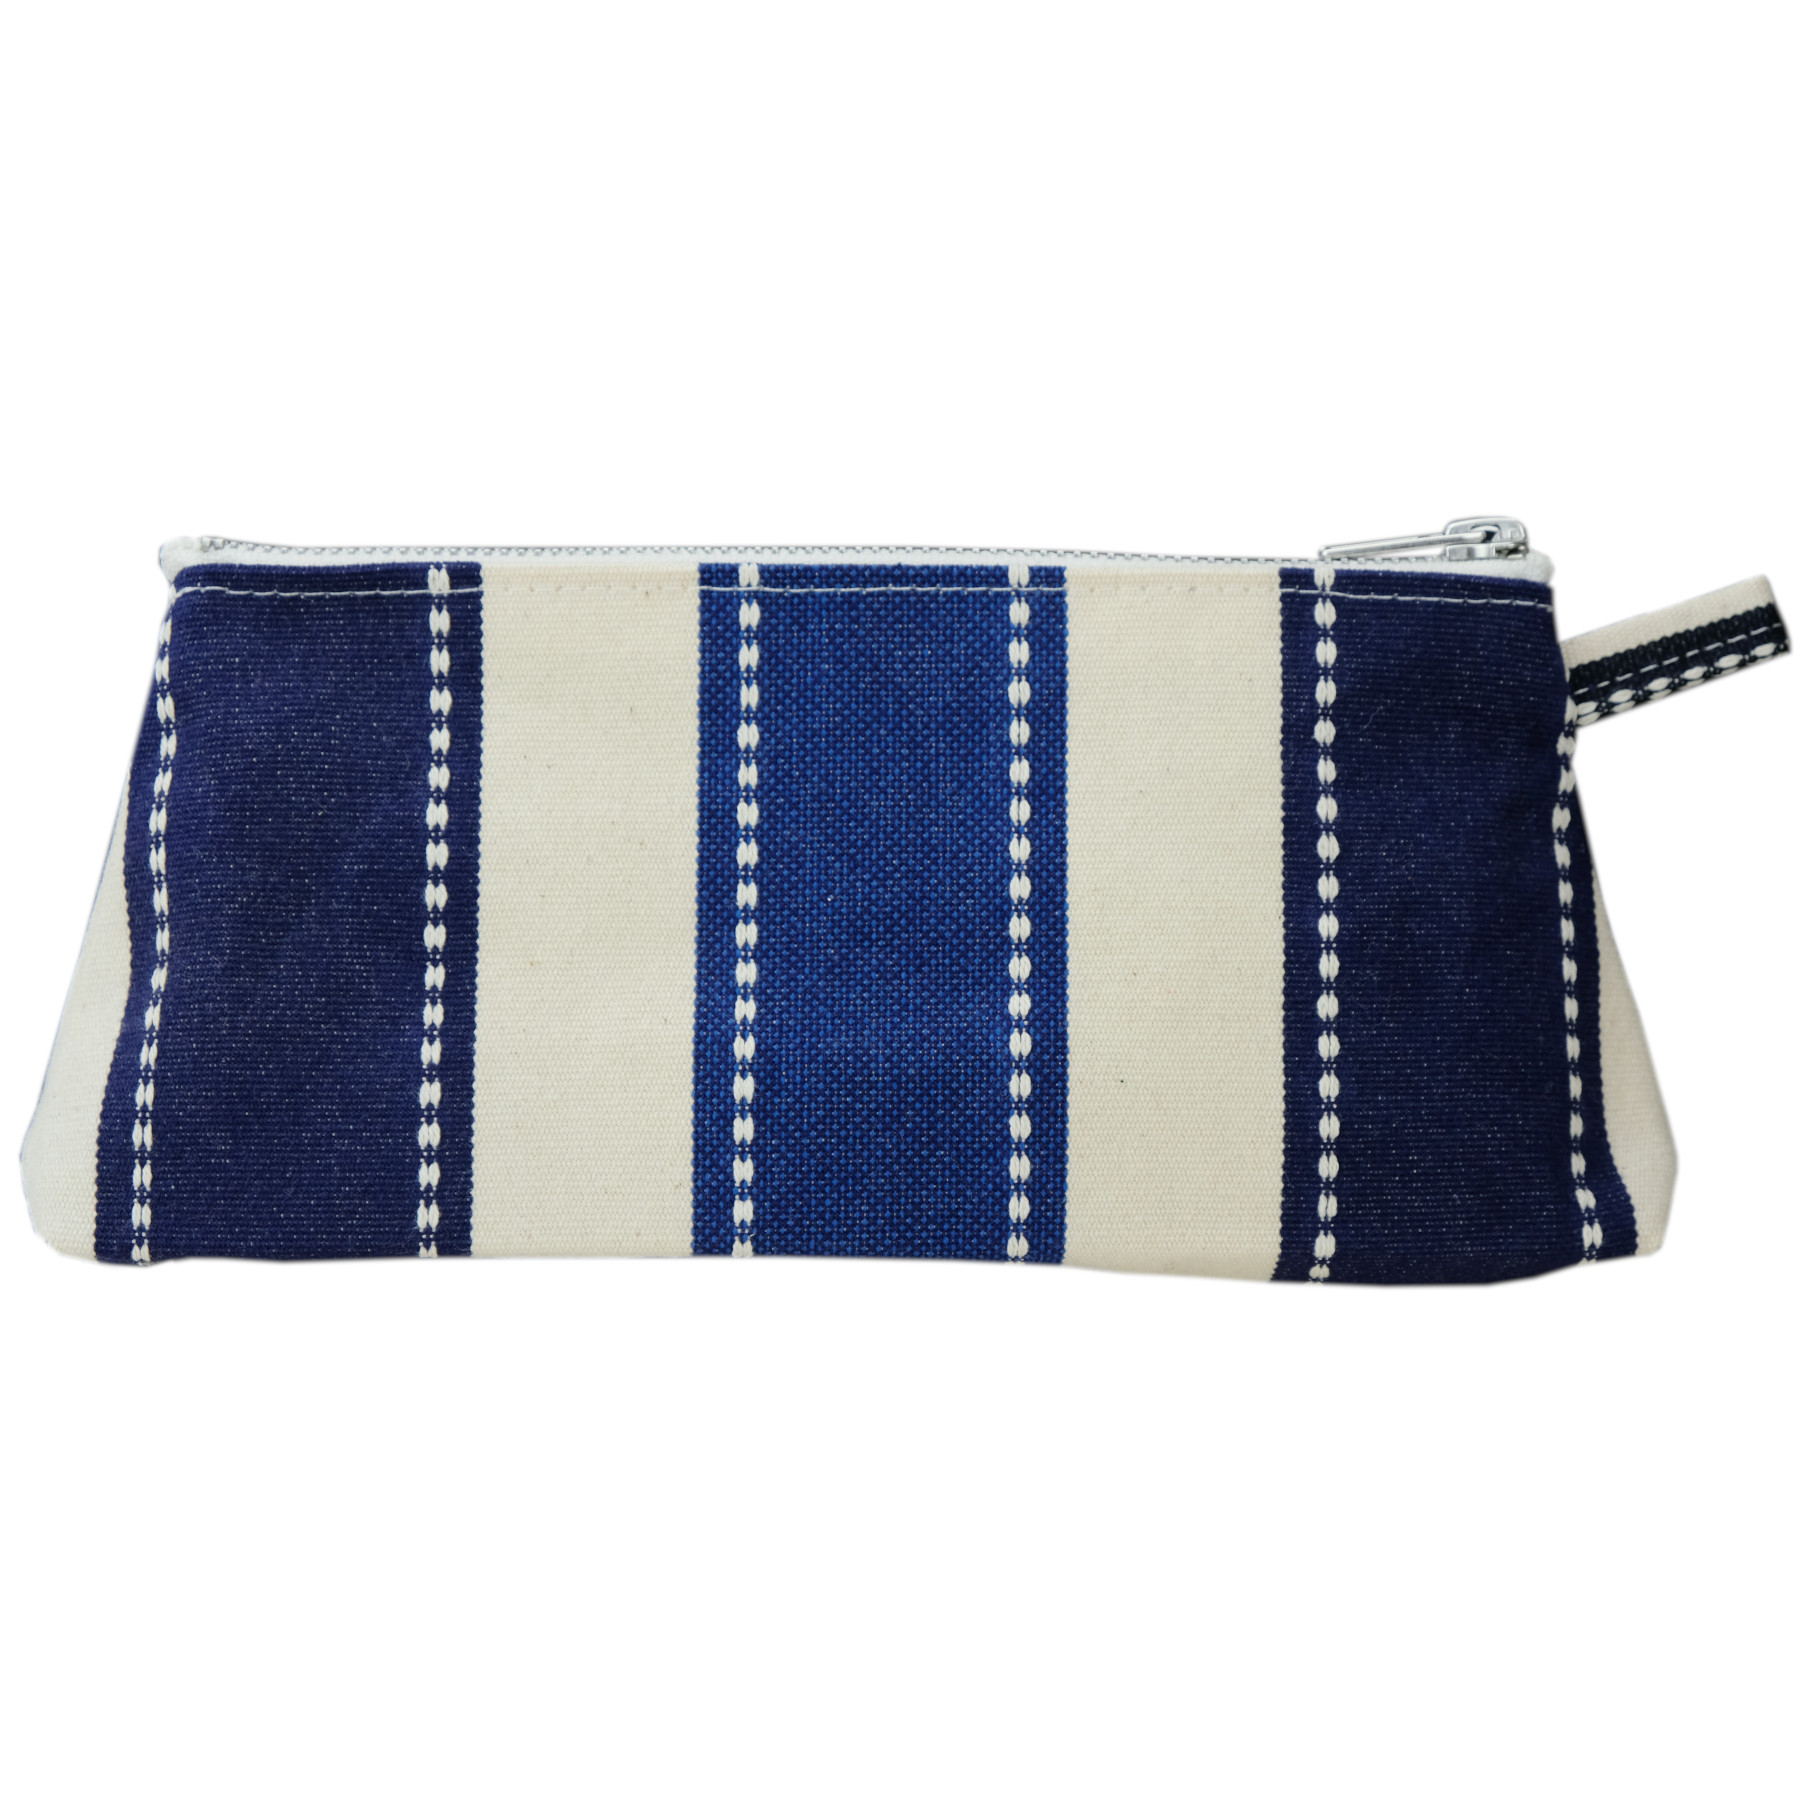 Pencil case PETIT SELLIER